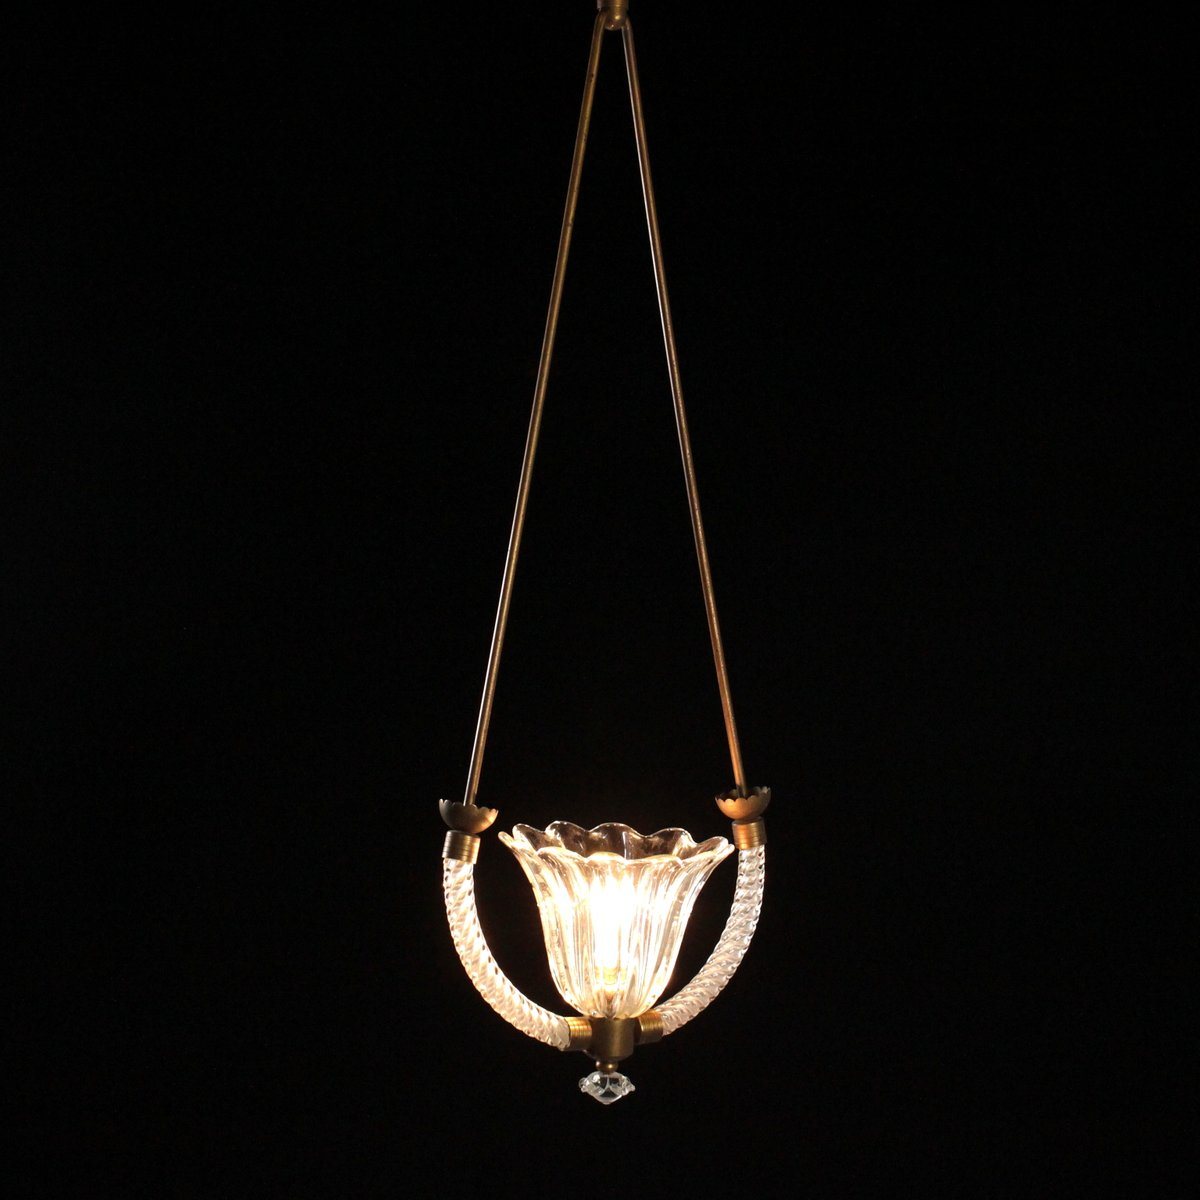 Suspension vintage en verre souffl et laiton en vente sur for Suspension en solde